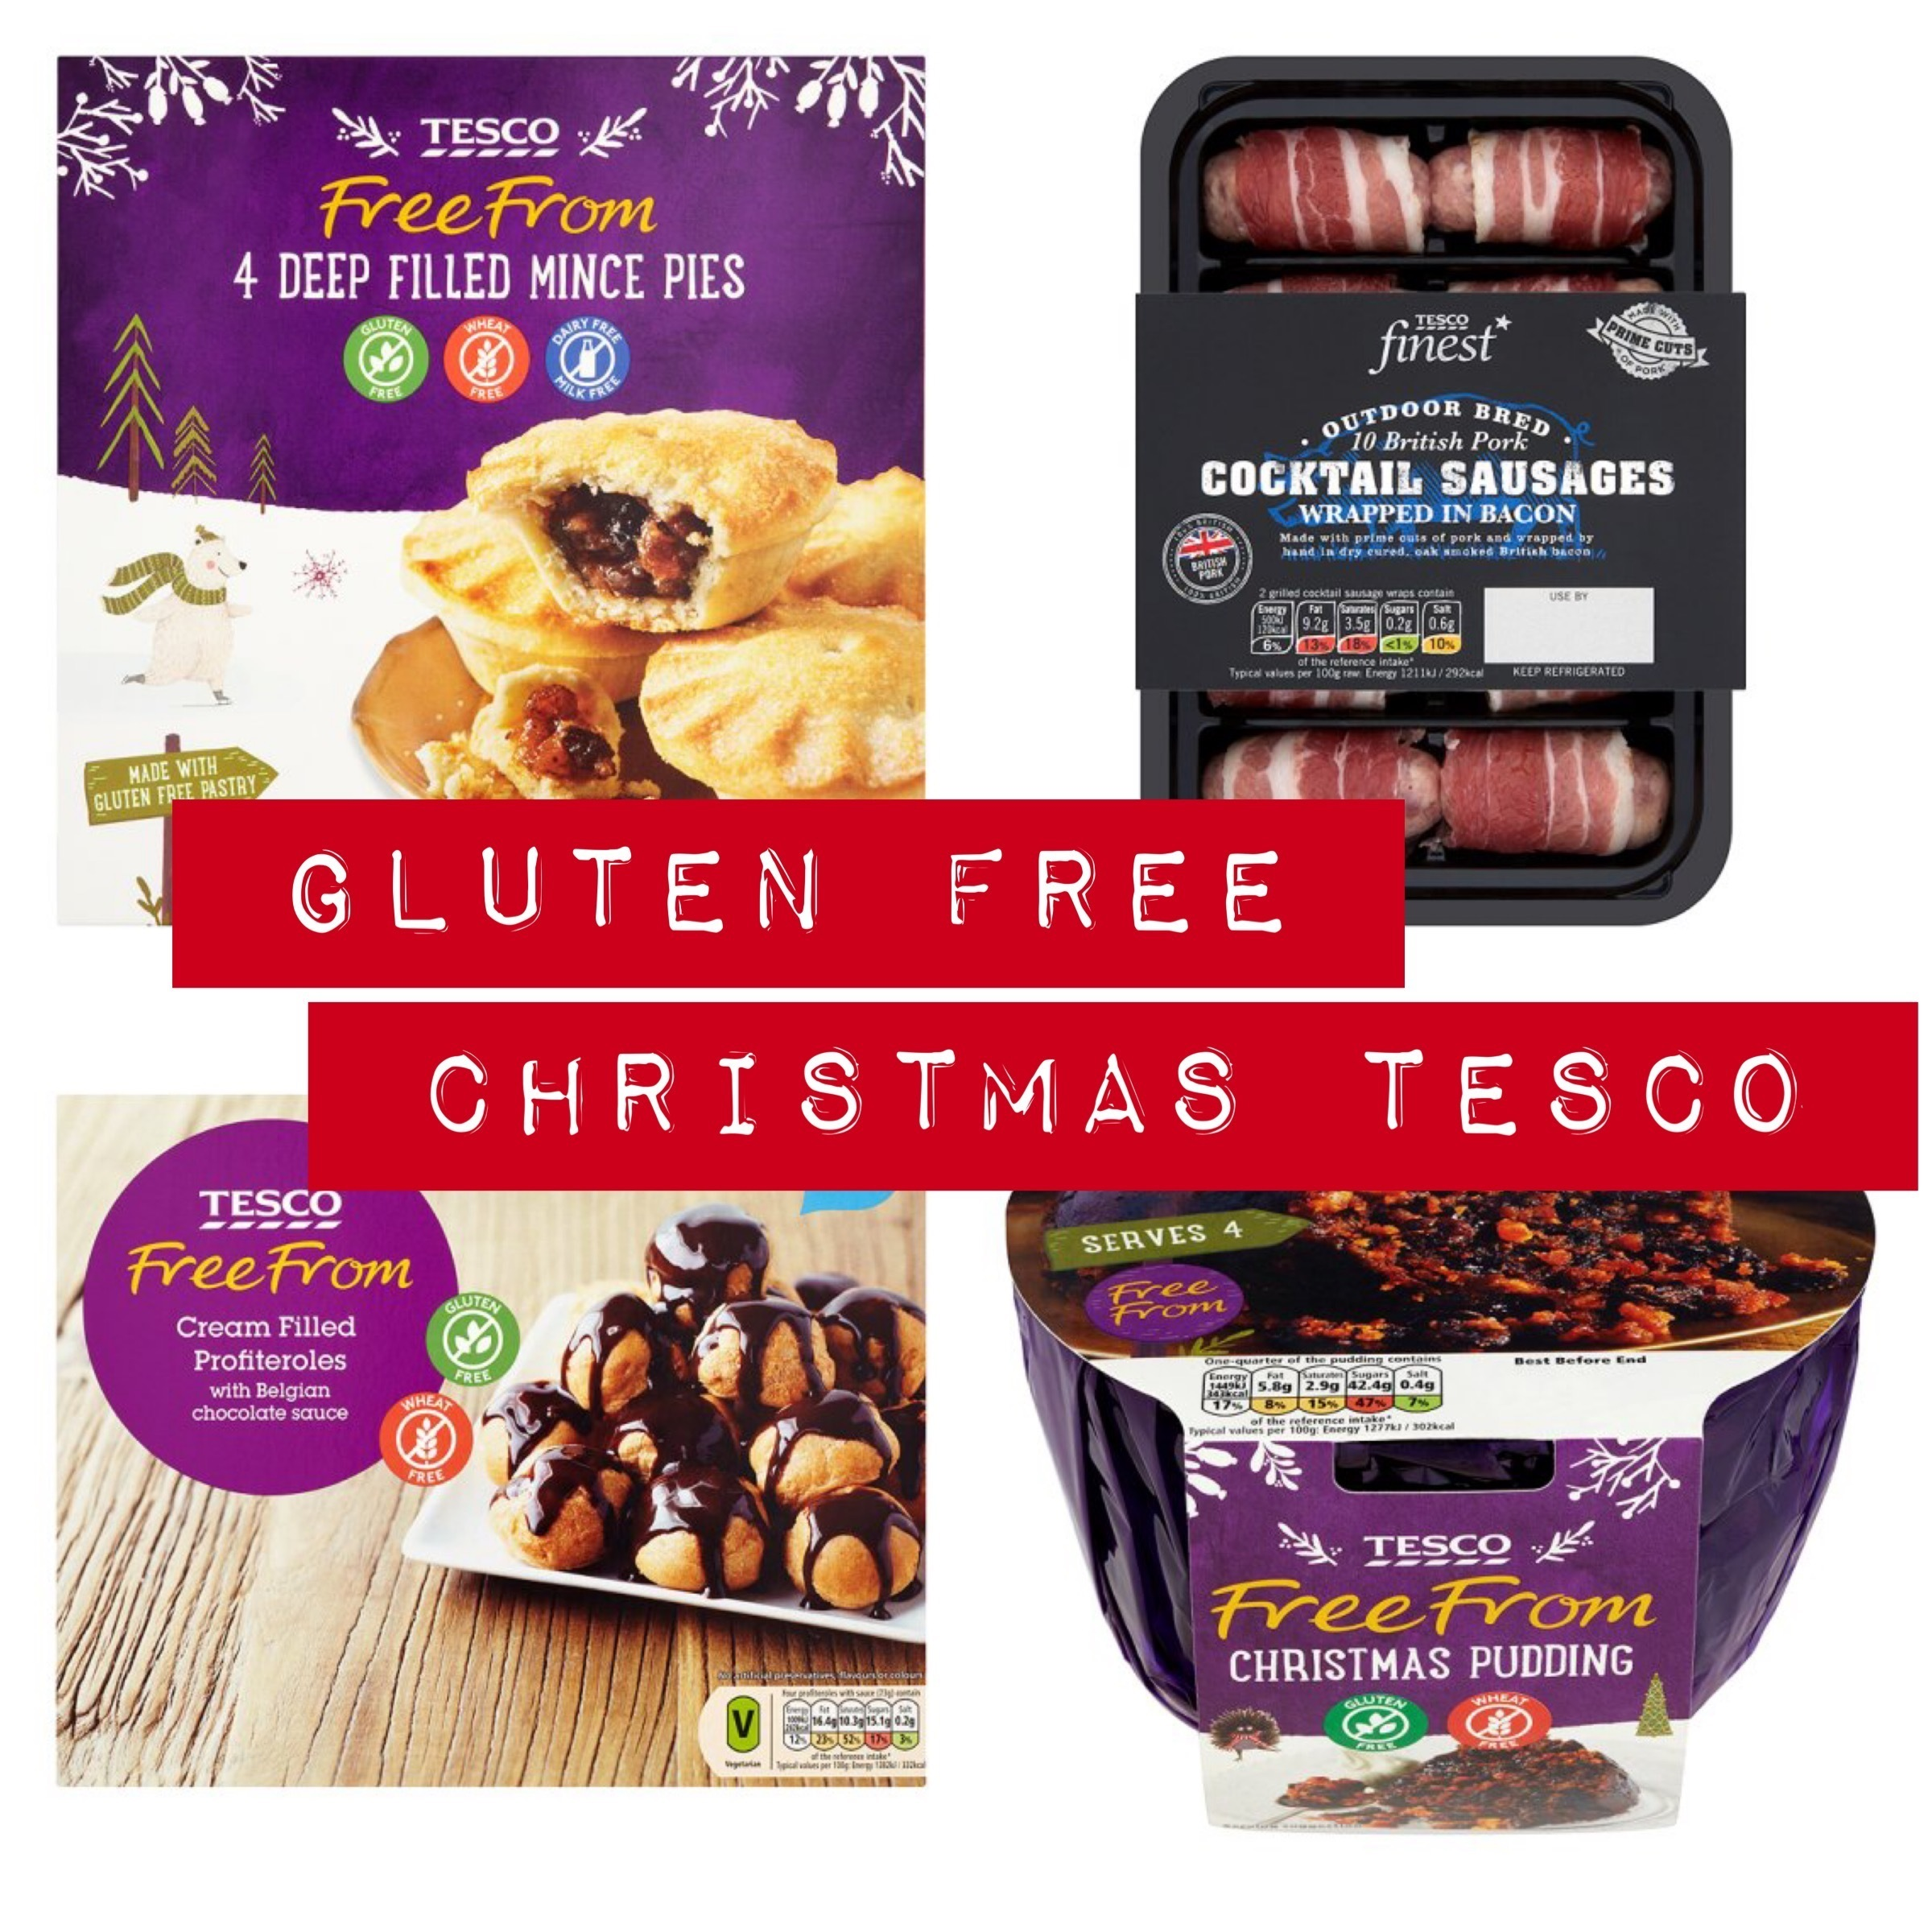 What Gluten Free Christmas Products are Tesco selling this year?